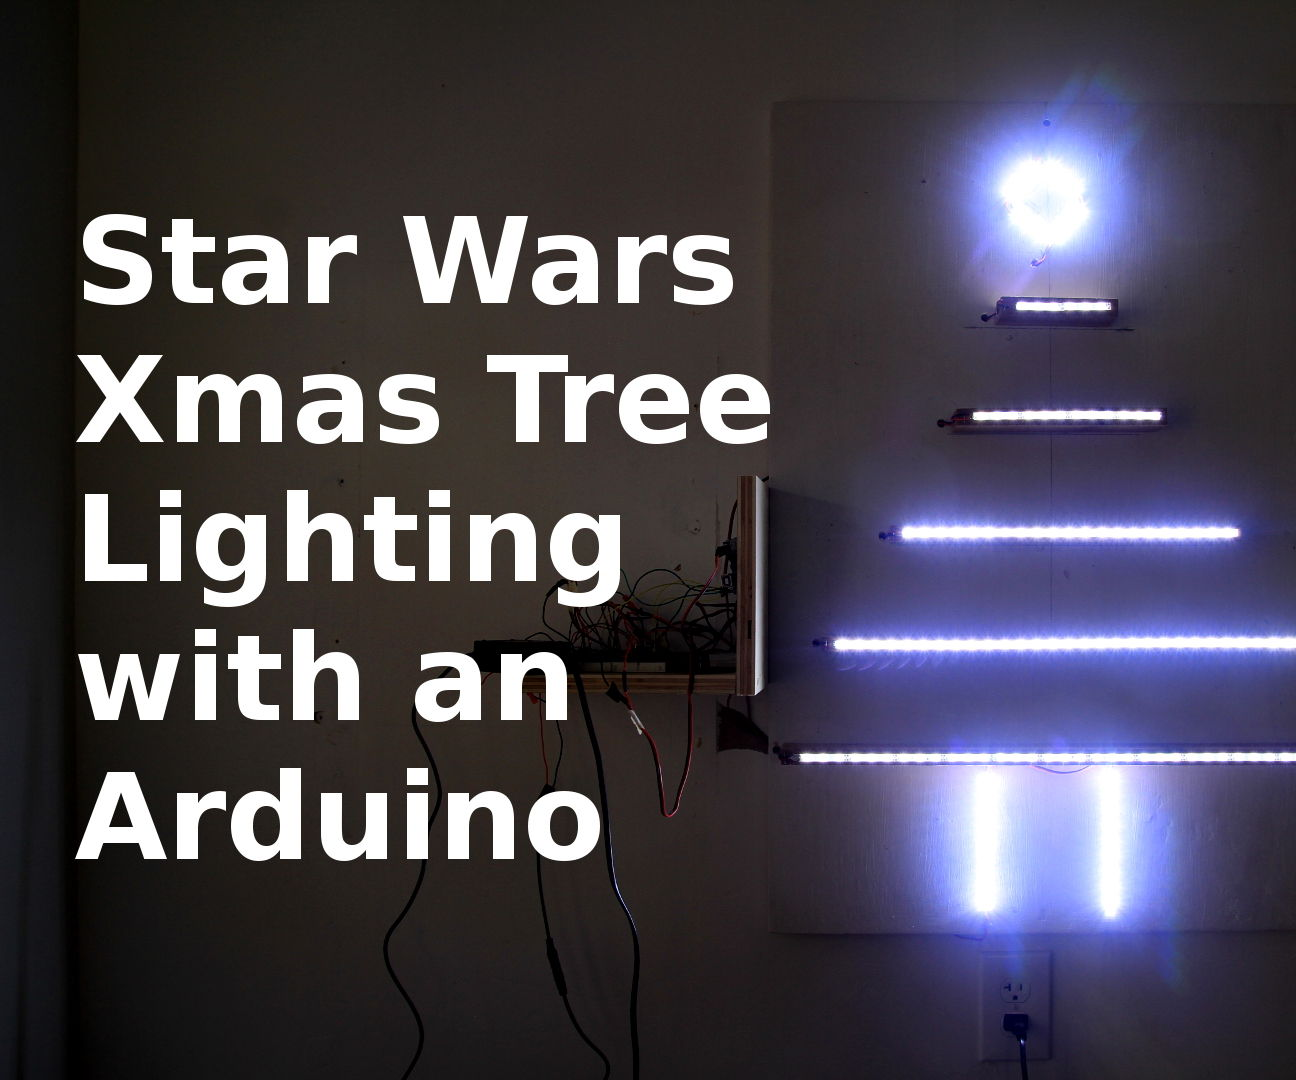 Arduino-Powered Wall Christmas Tree w/ Star Wars Theme LED Lights